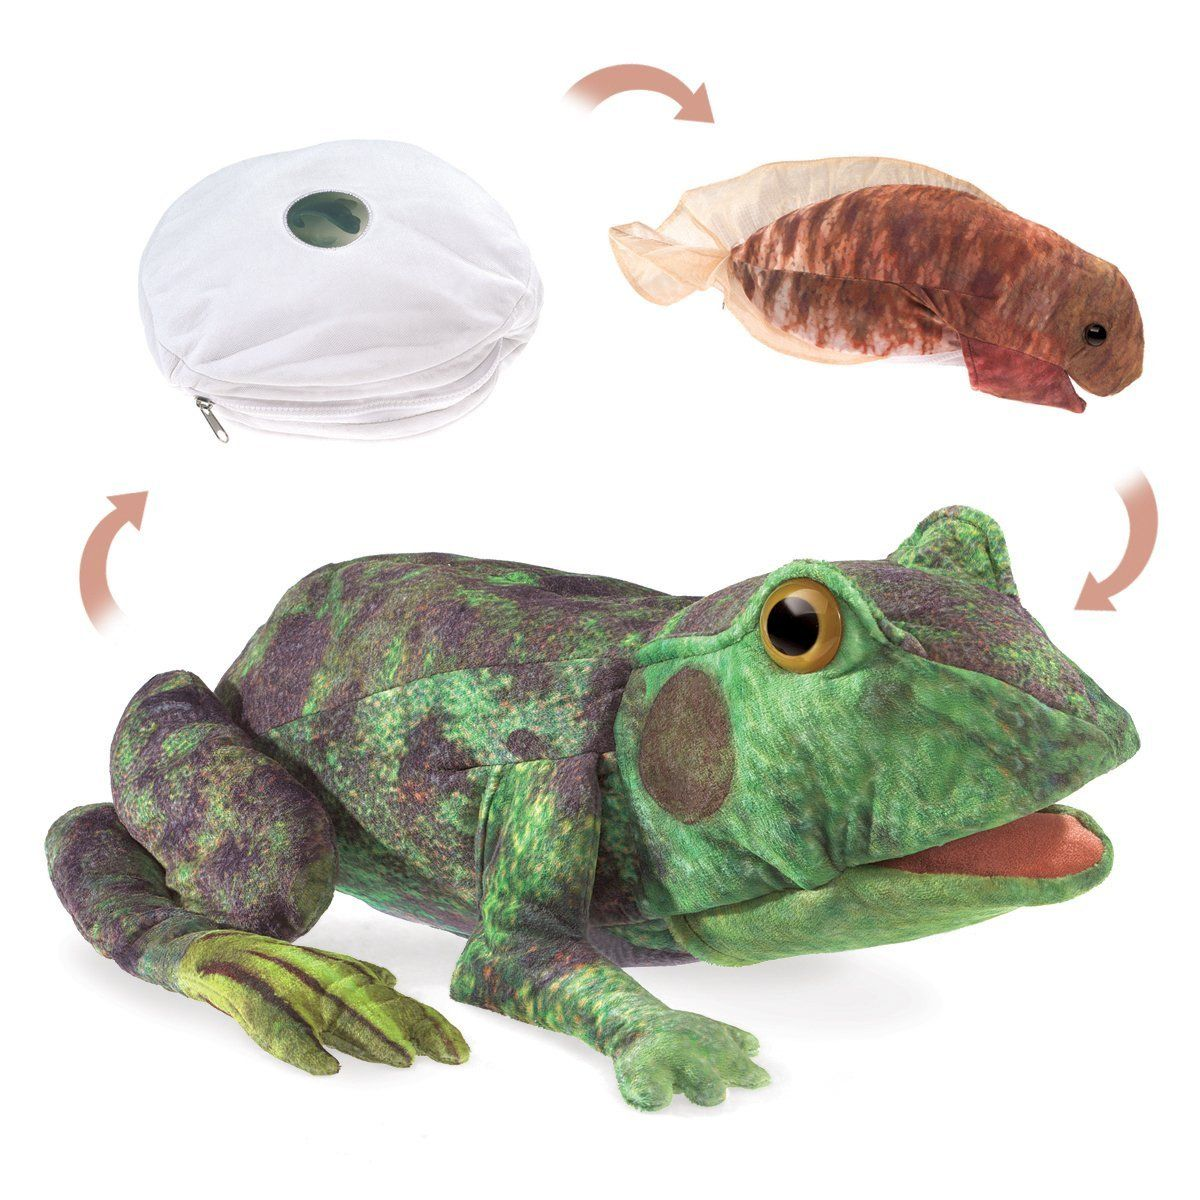 Frog Life Cycle Puppet 14 inch - Puppet by Folkmanis (3115)